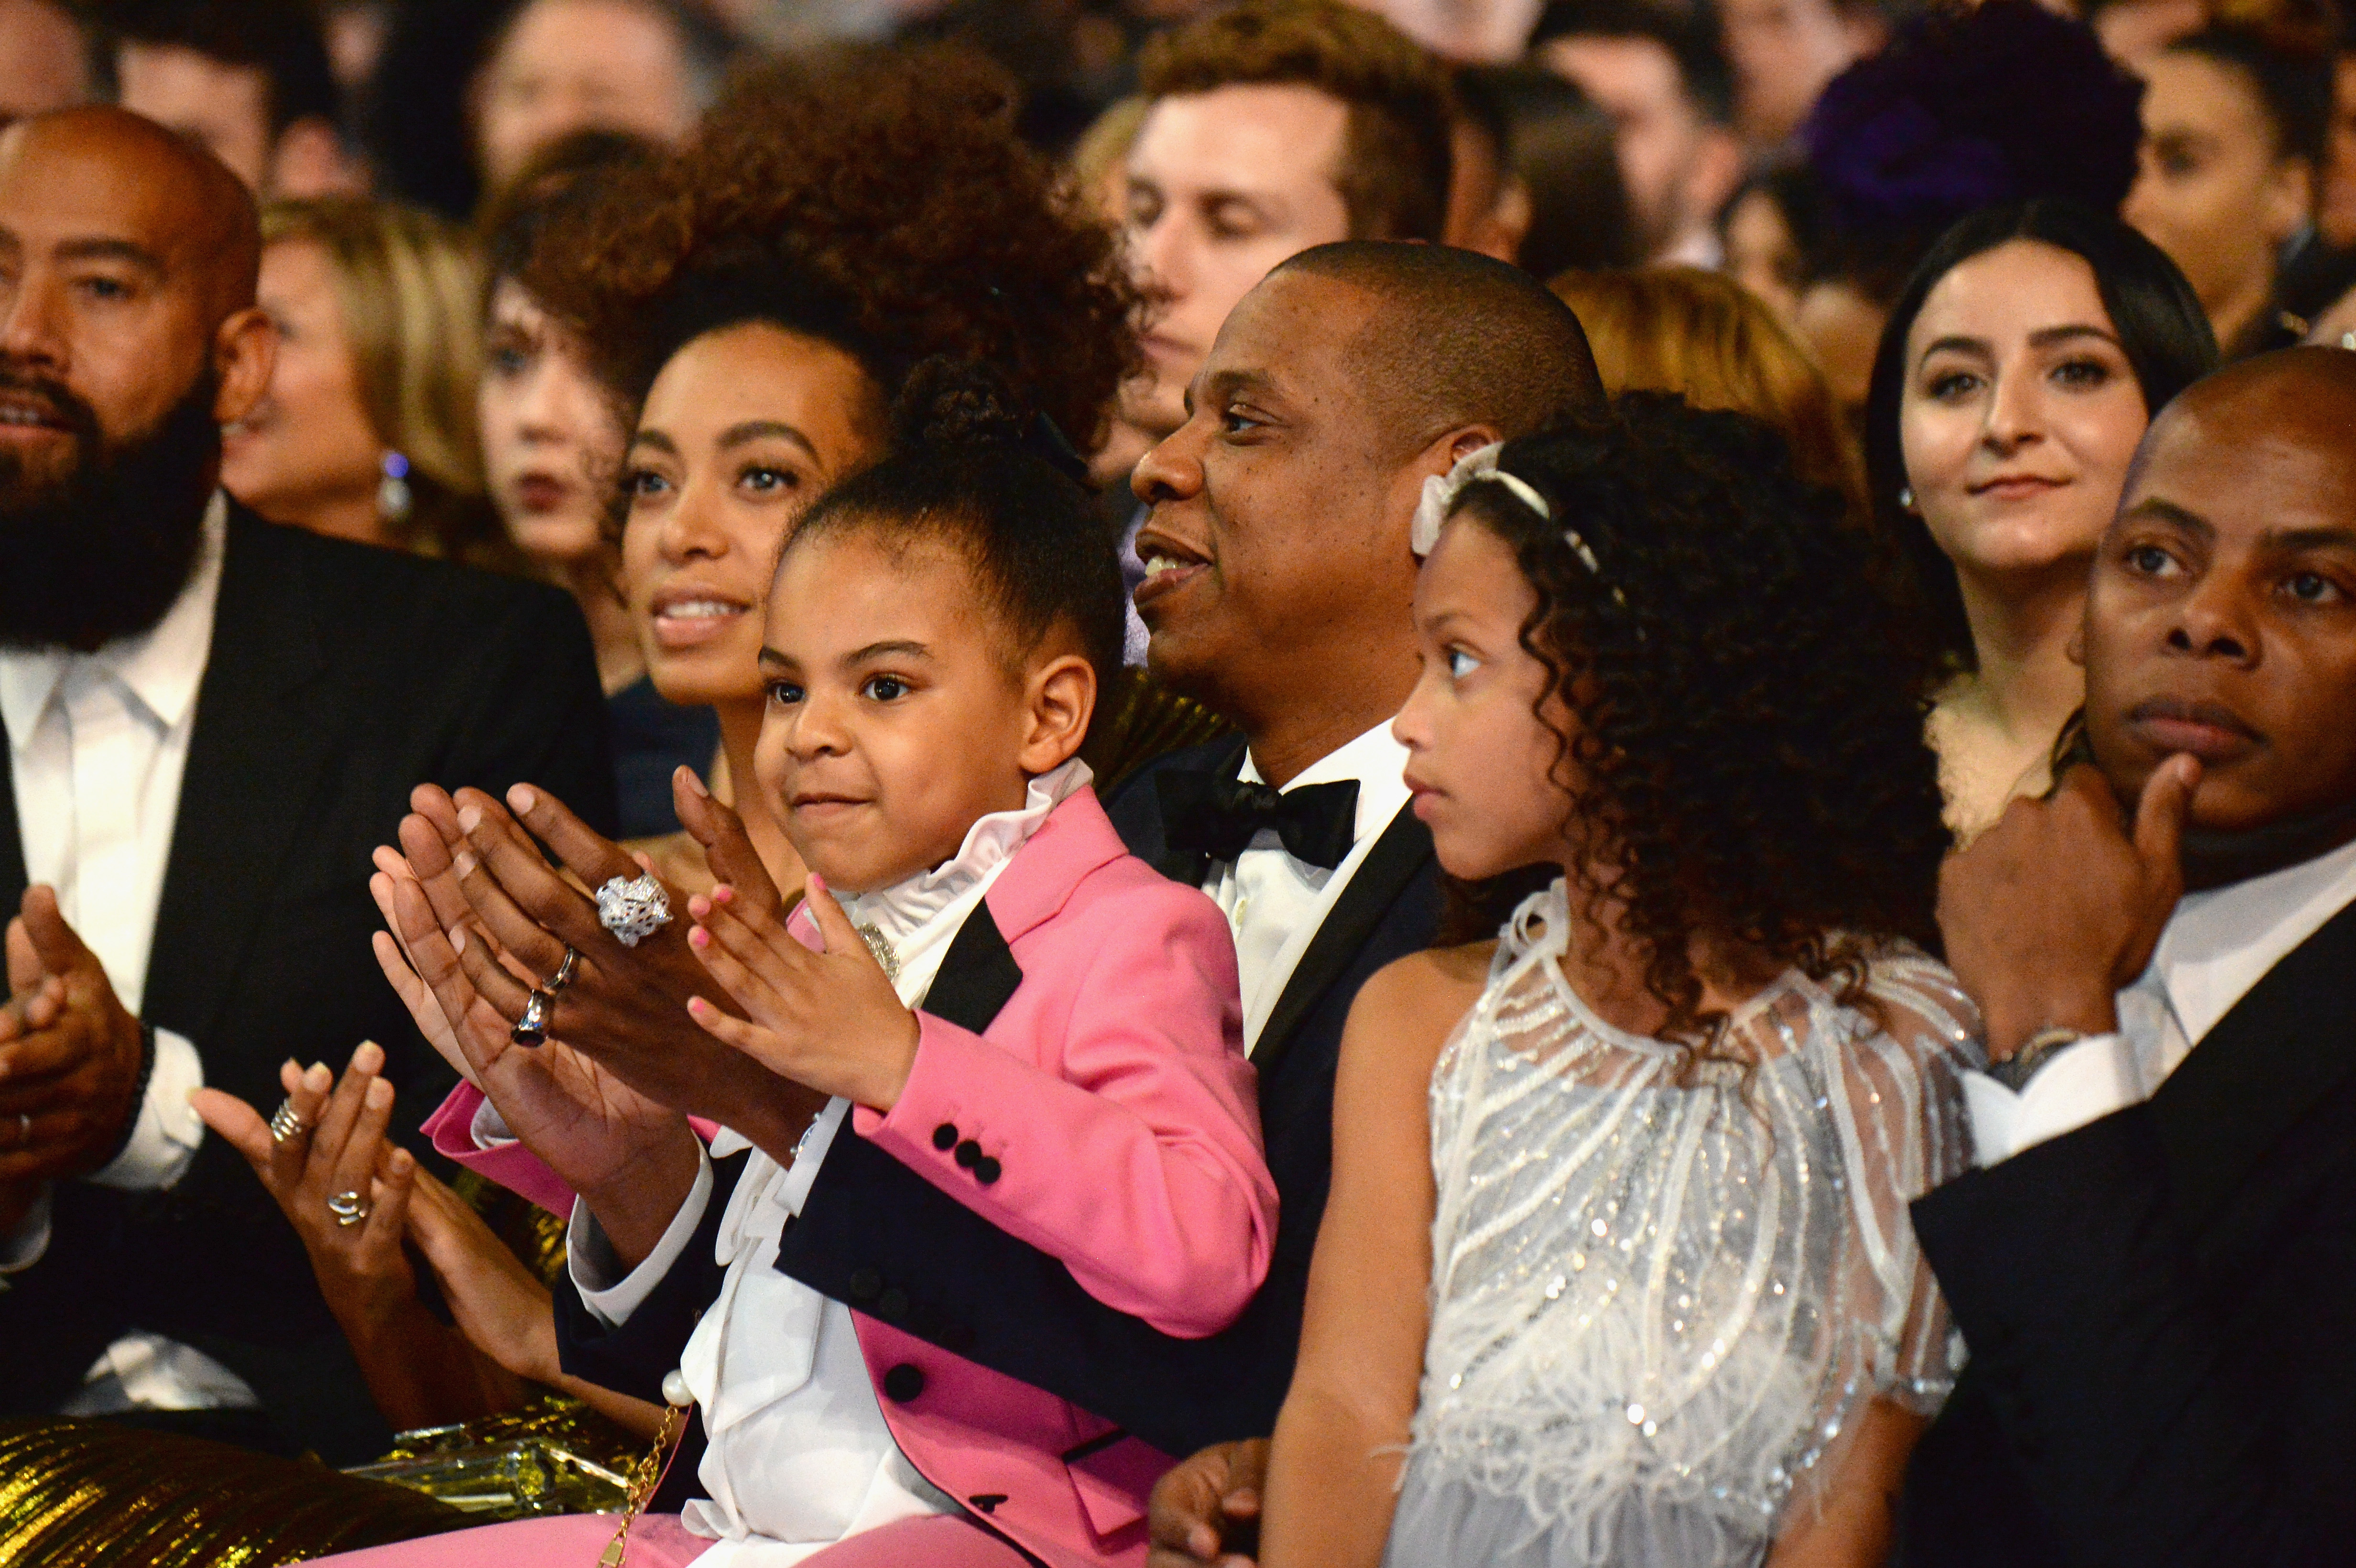 Blue Ivy Carter with her dad and a crowd at the Grammys